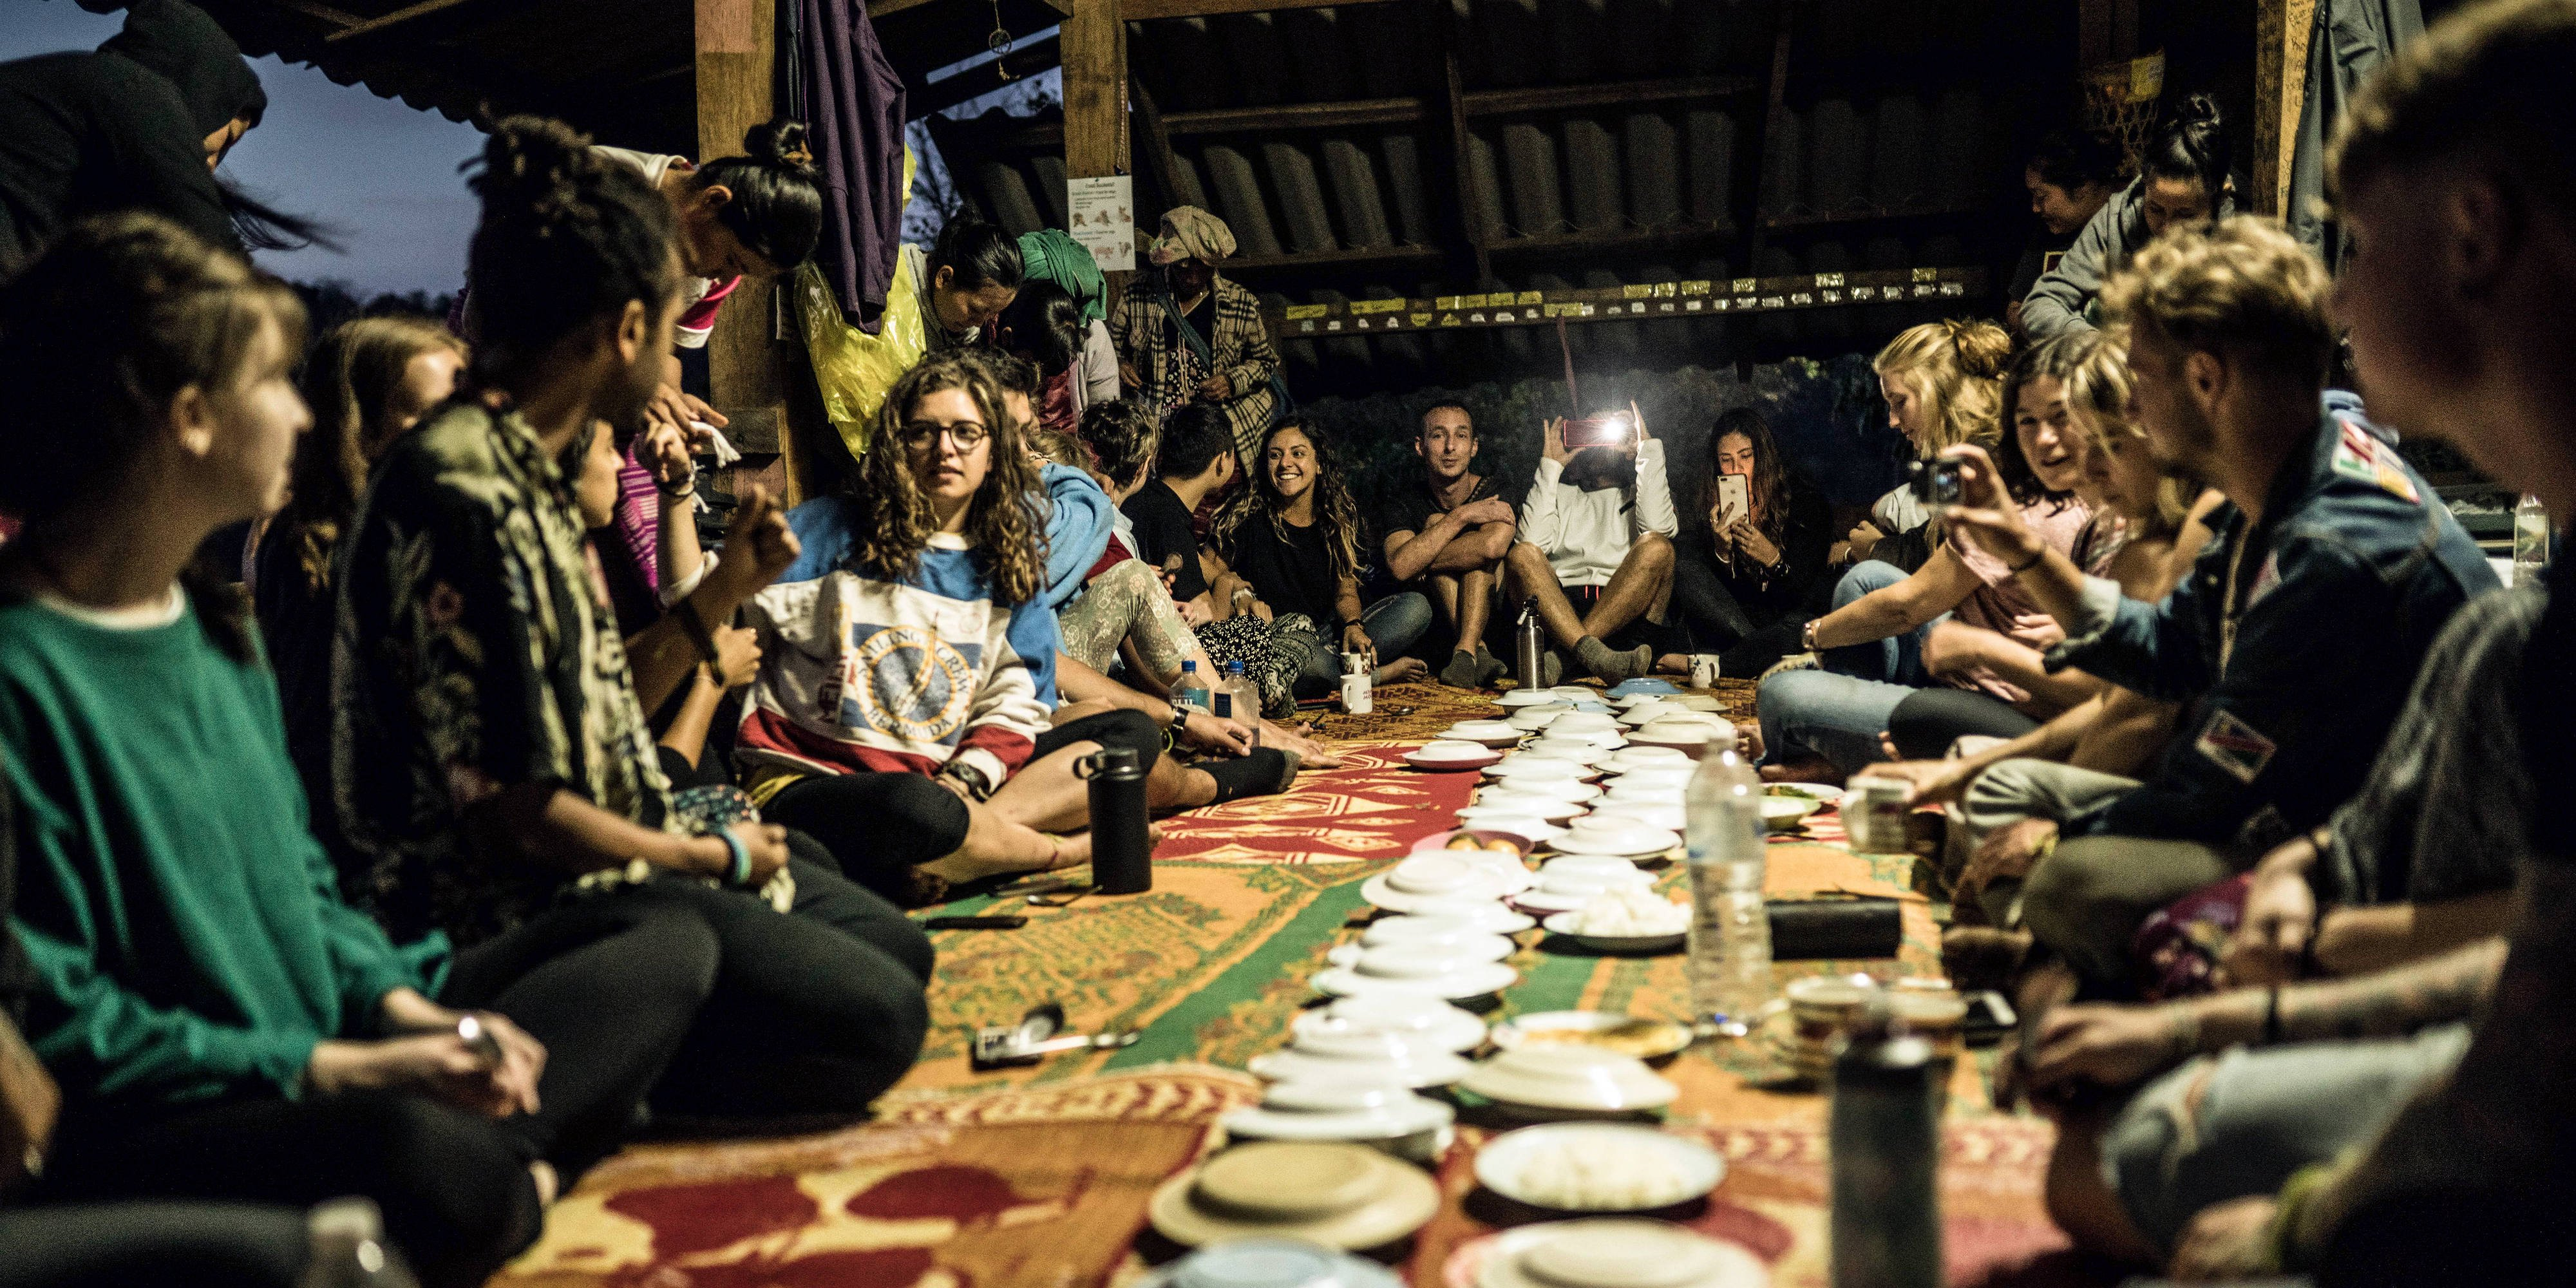 GVI participants share a communal meal in Chiang Mai, while on the program working with elephants in Thailand.